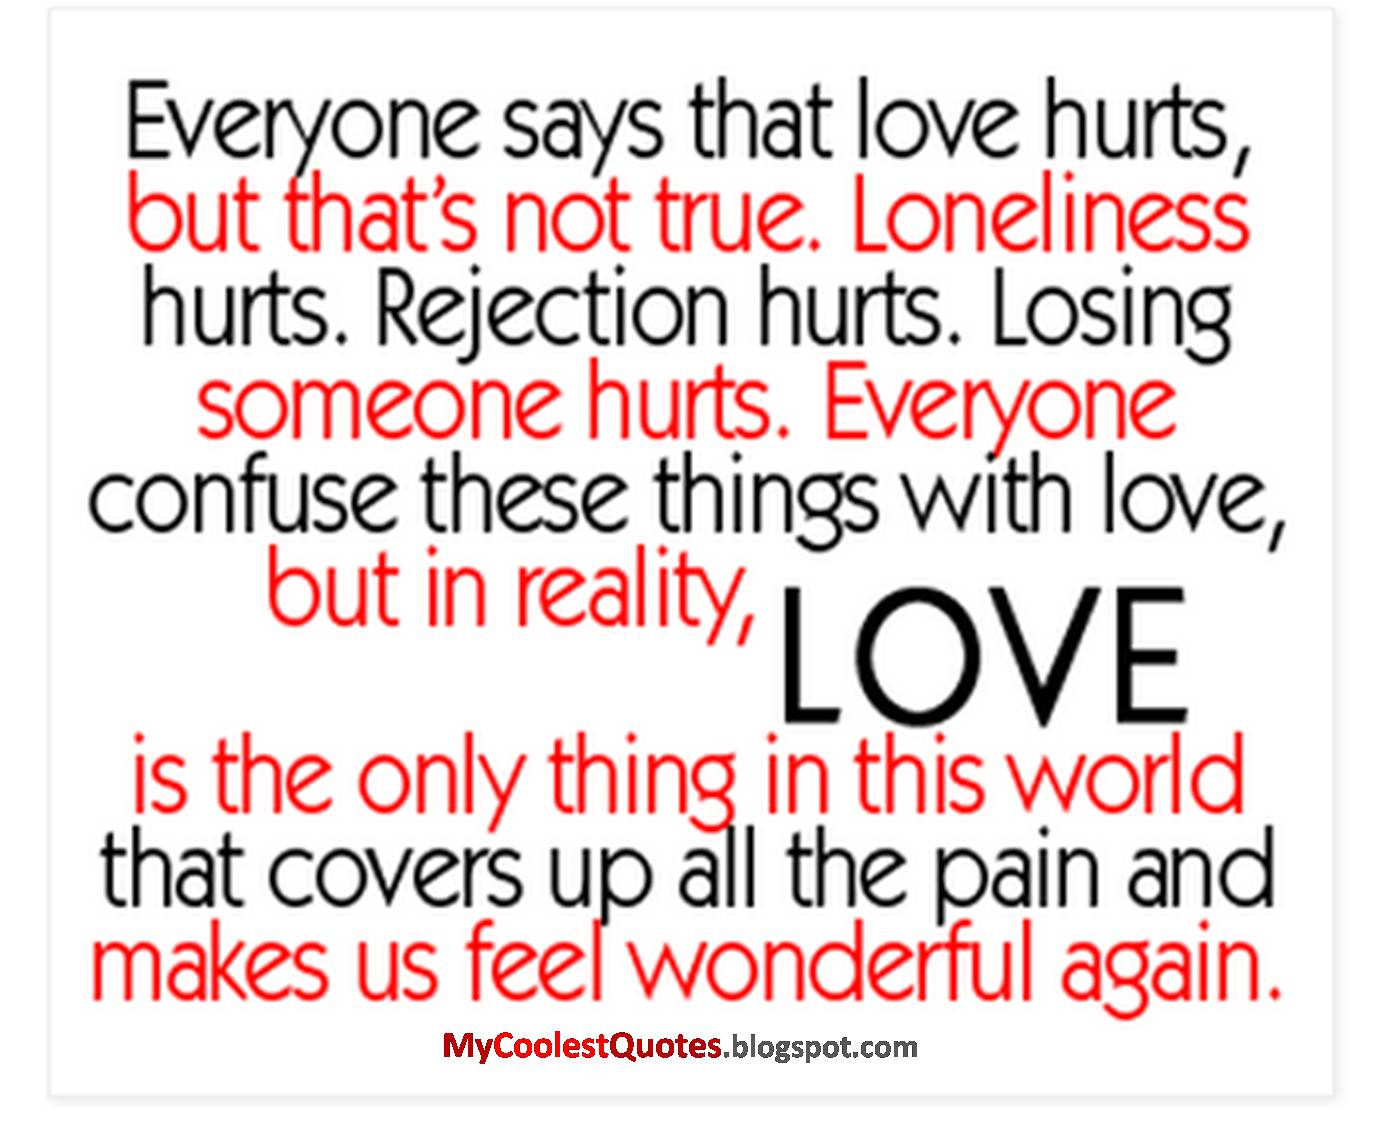 Everyone says that love hurts,